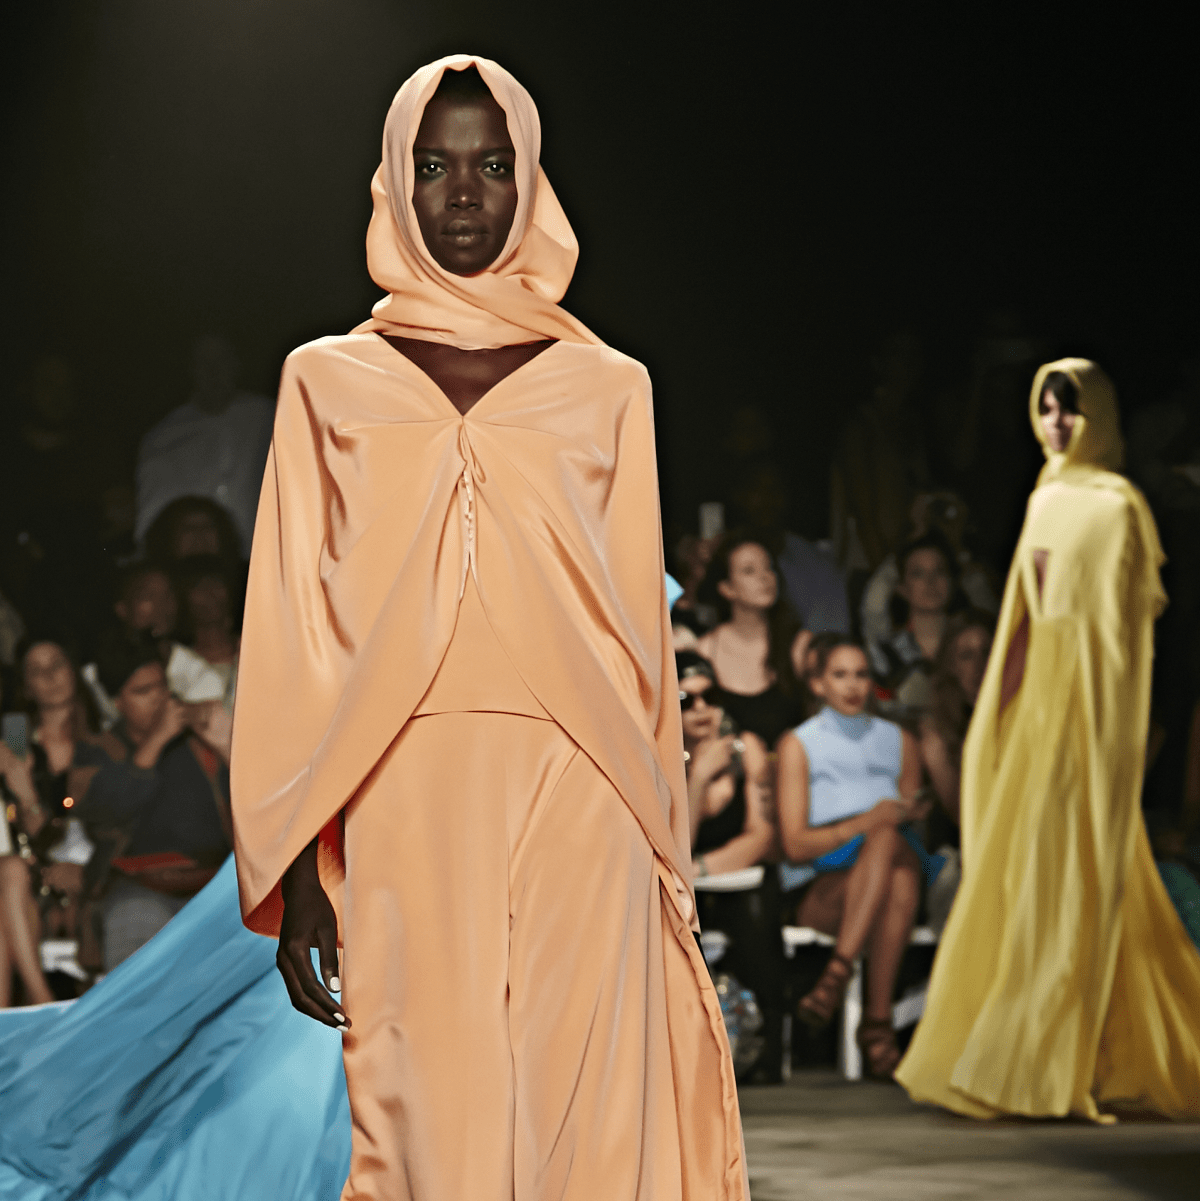 Christian Siriano spring 2016 collection